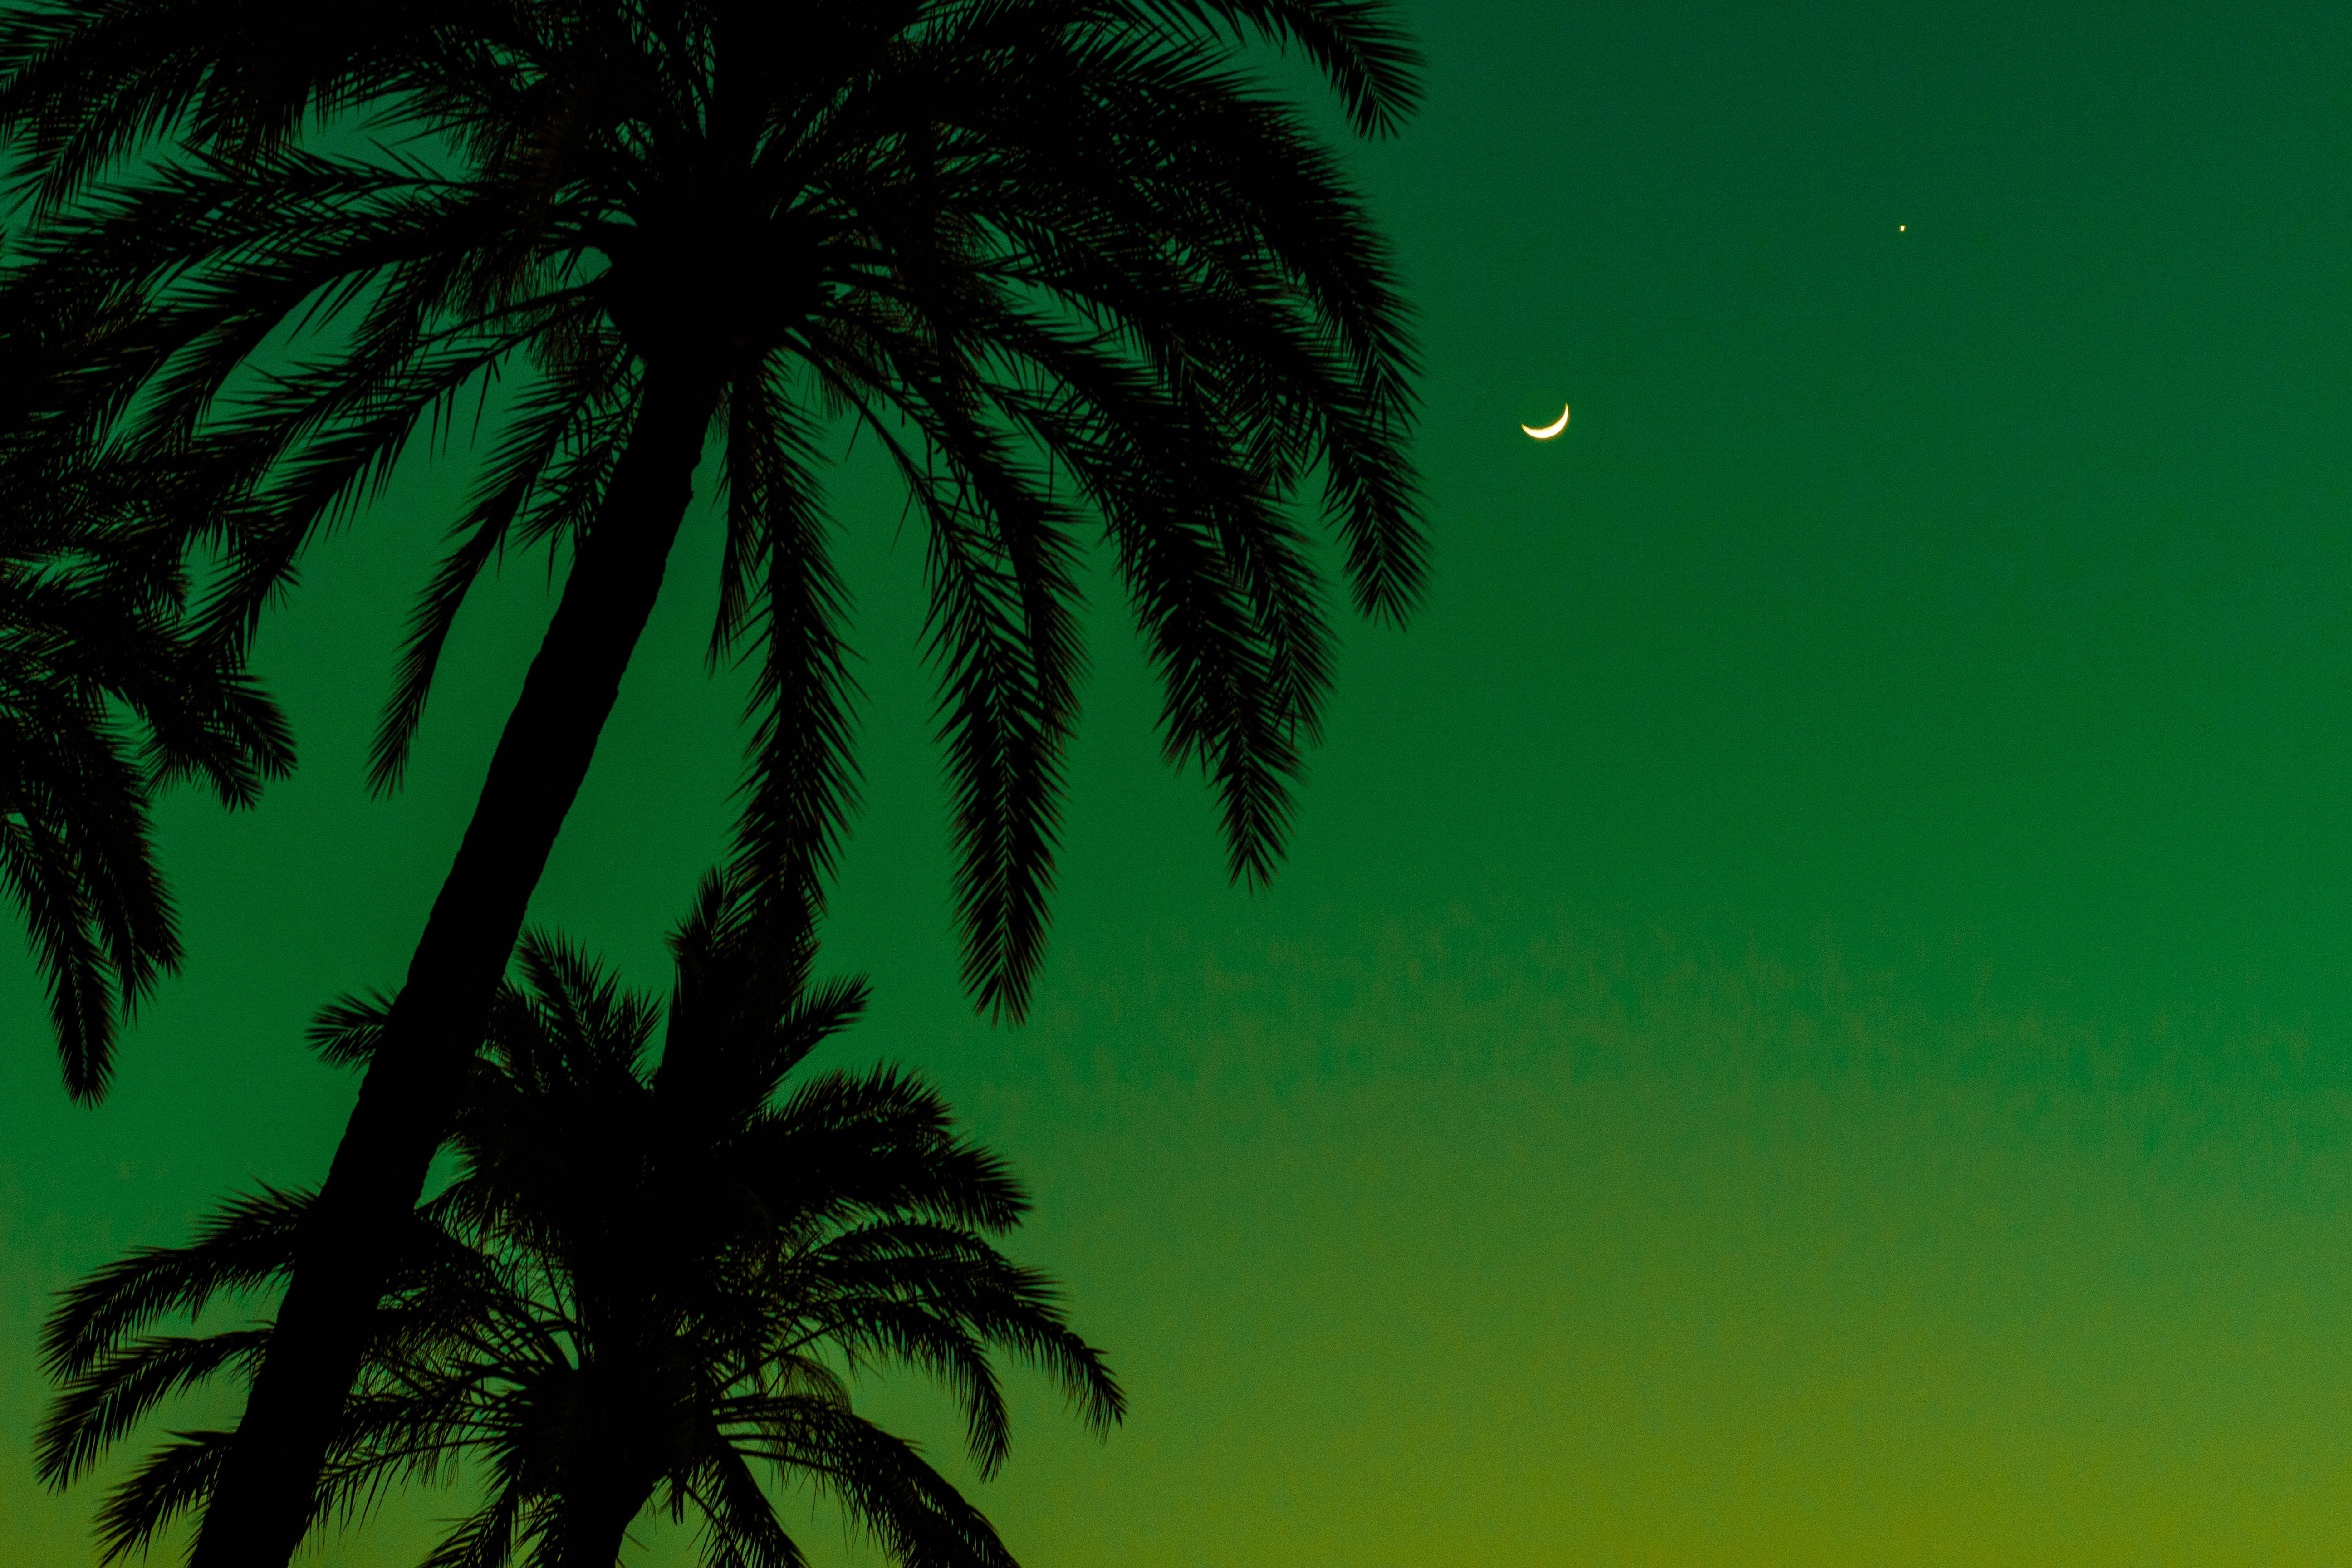 Palm trees silhouetted against a green sky with a crescent moon over Parque de Maria Luisa